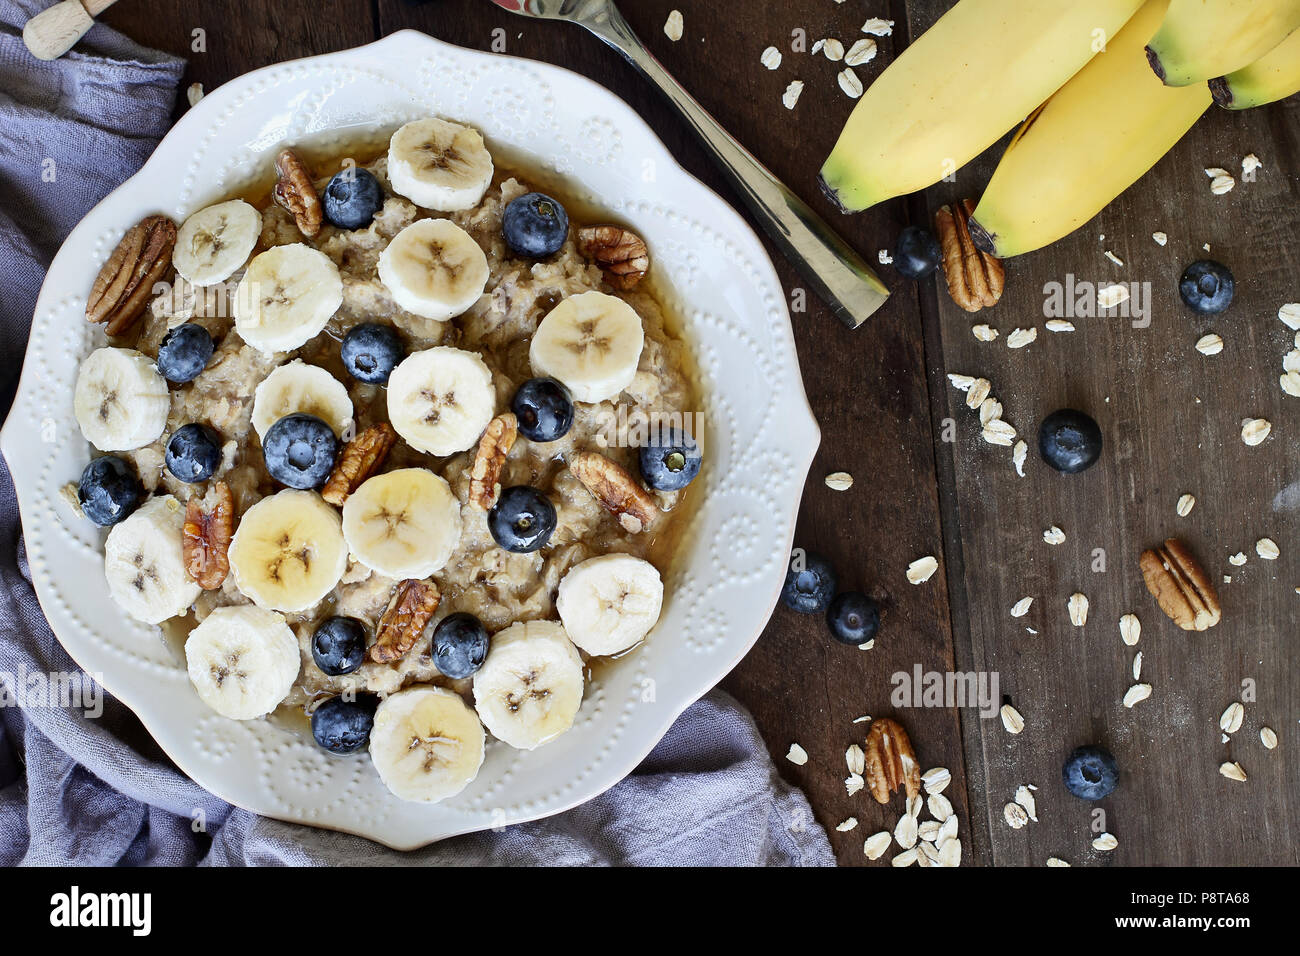 Hot breakfast of healthy oatmeal with pecans, bananas, blueberries and honey over a rustic background. Image shot from overhead. - Stock Image